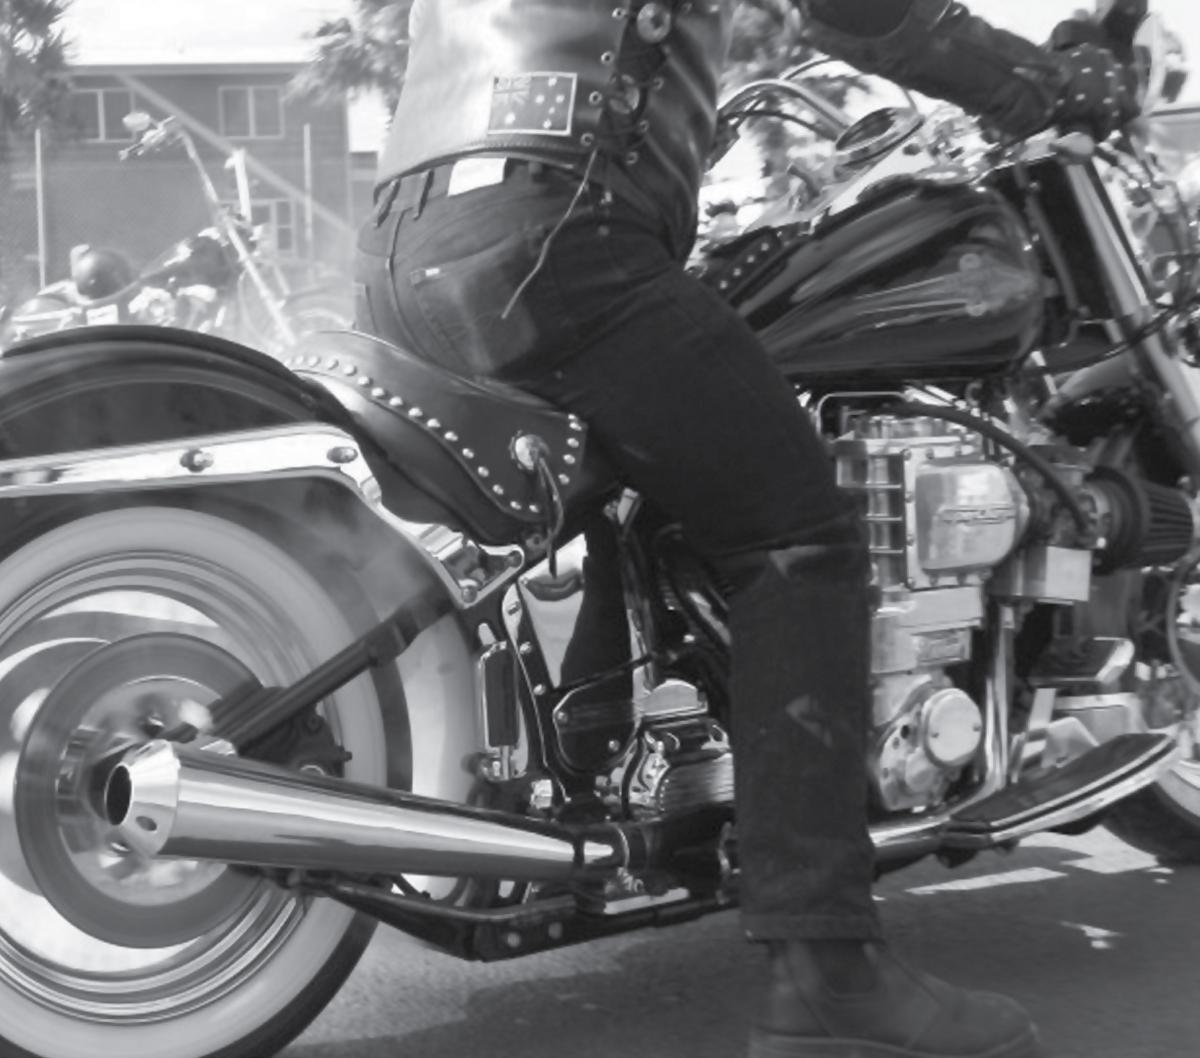 The Outlaws: Bikers Behind Bars | Middle District of Florida